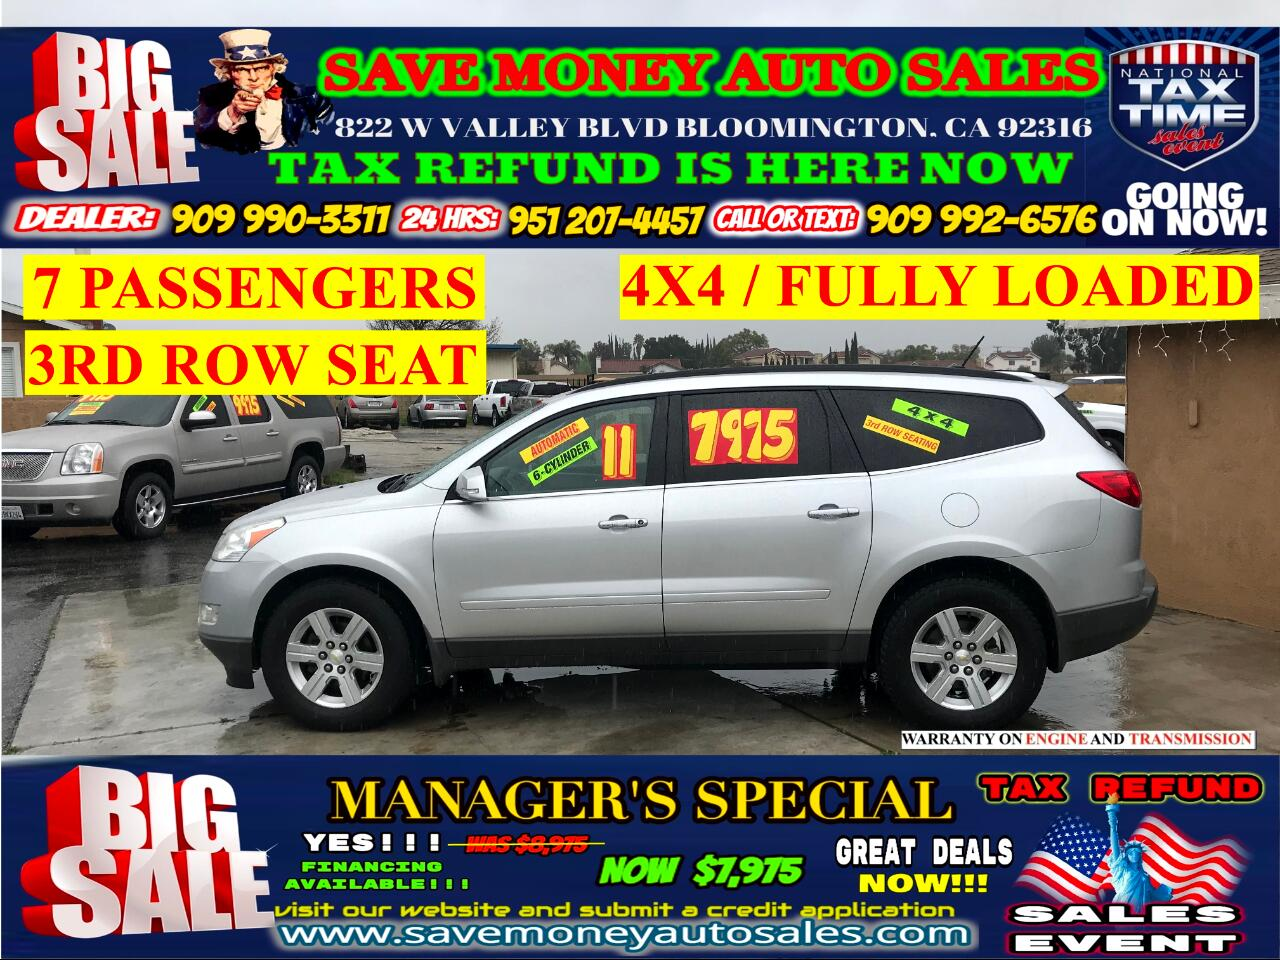 2011 Chevrolet Traverse LT AWD> 7 PASSENGERS> BACKUP CAMERA> EXTRA CLEAN